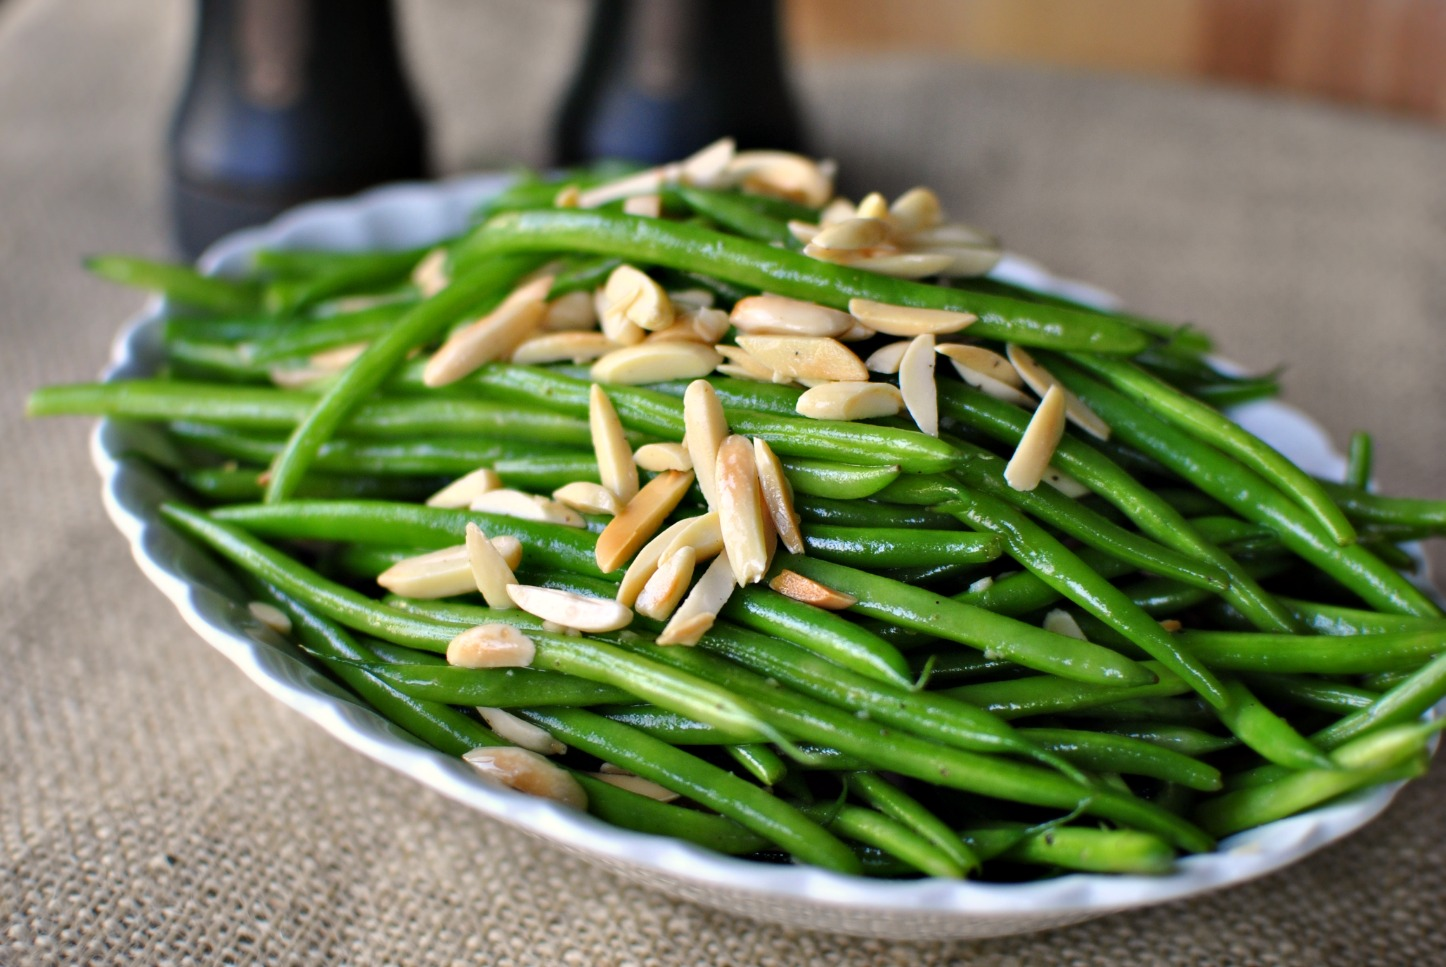 Sauteed-Garlic-Green-Beans-with-Toasted-Almonds.jpg